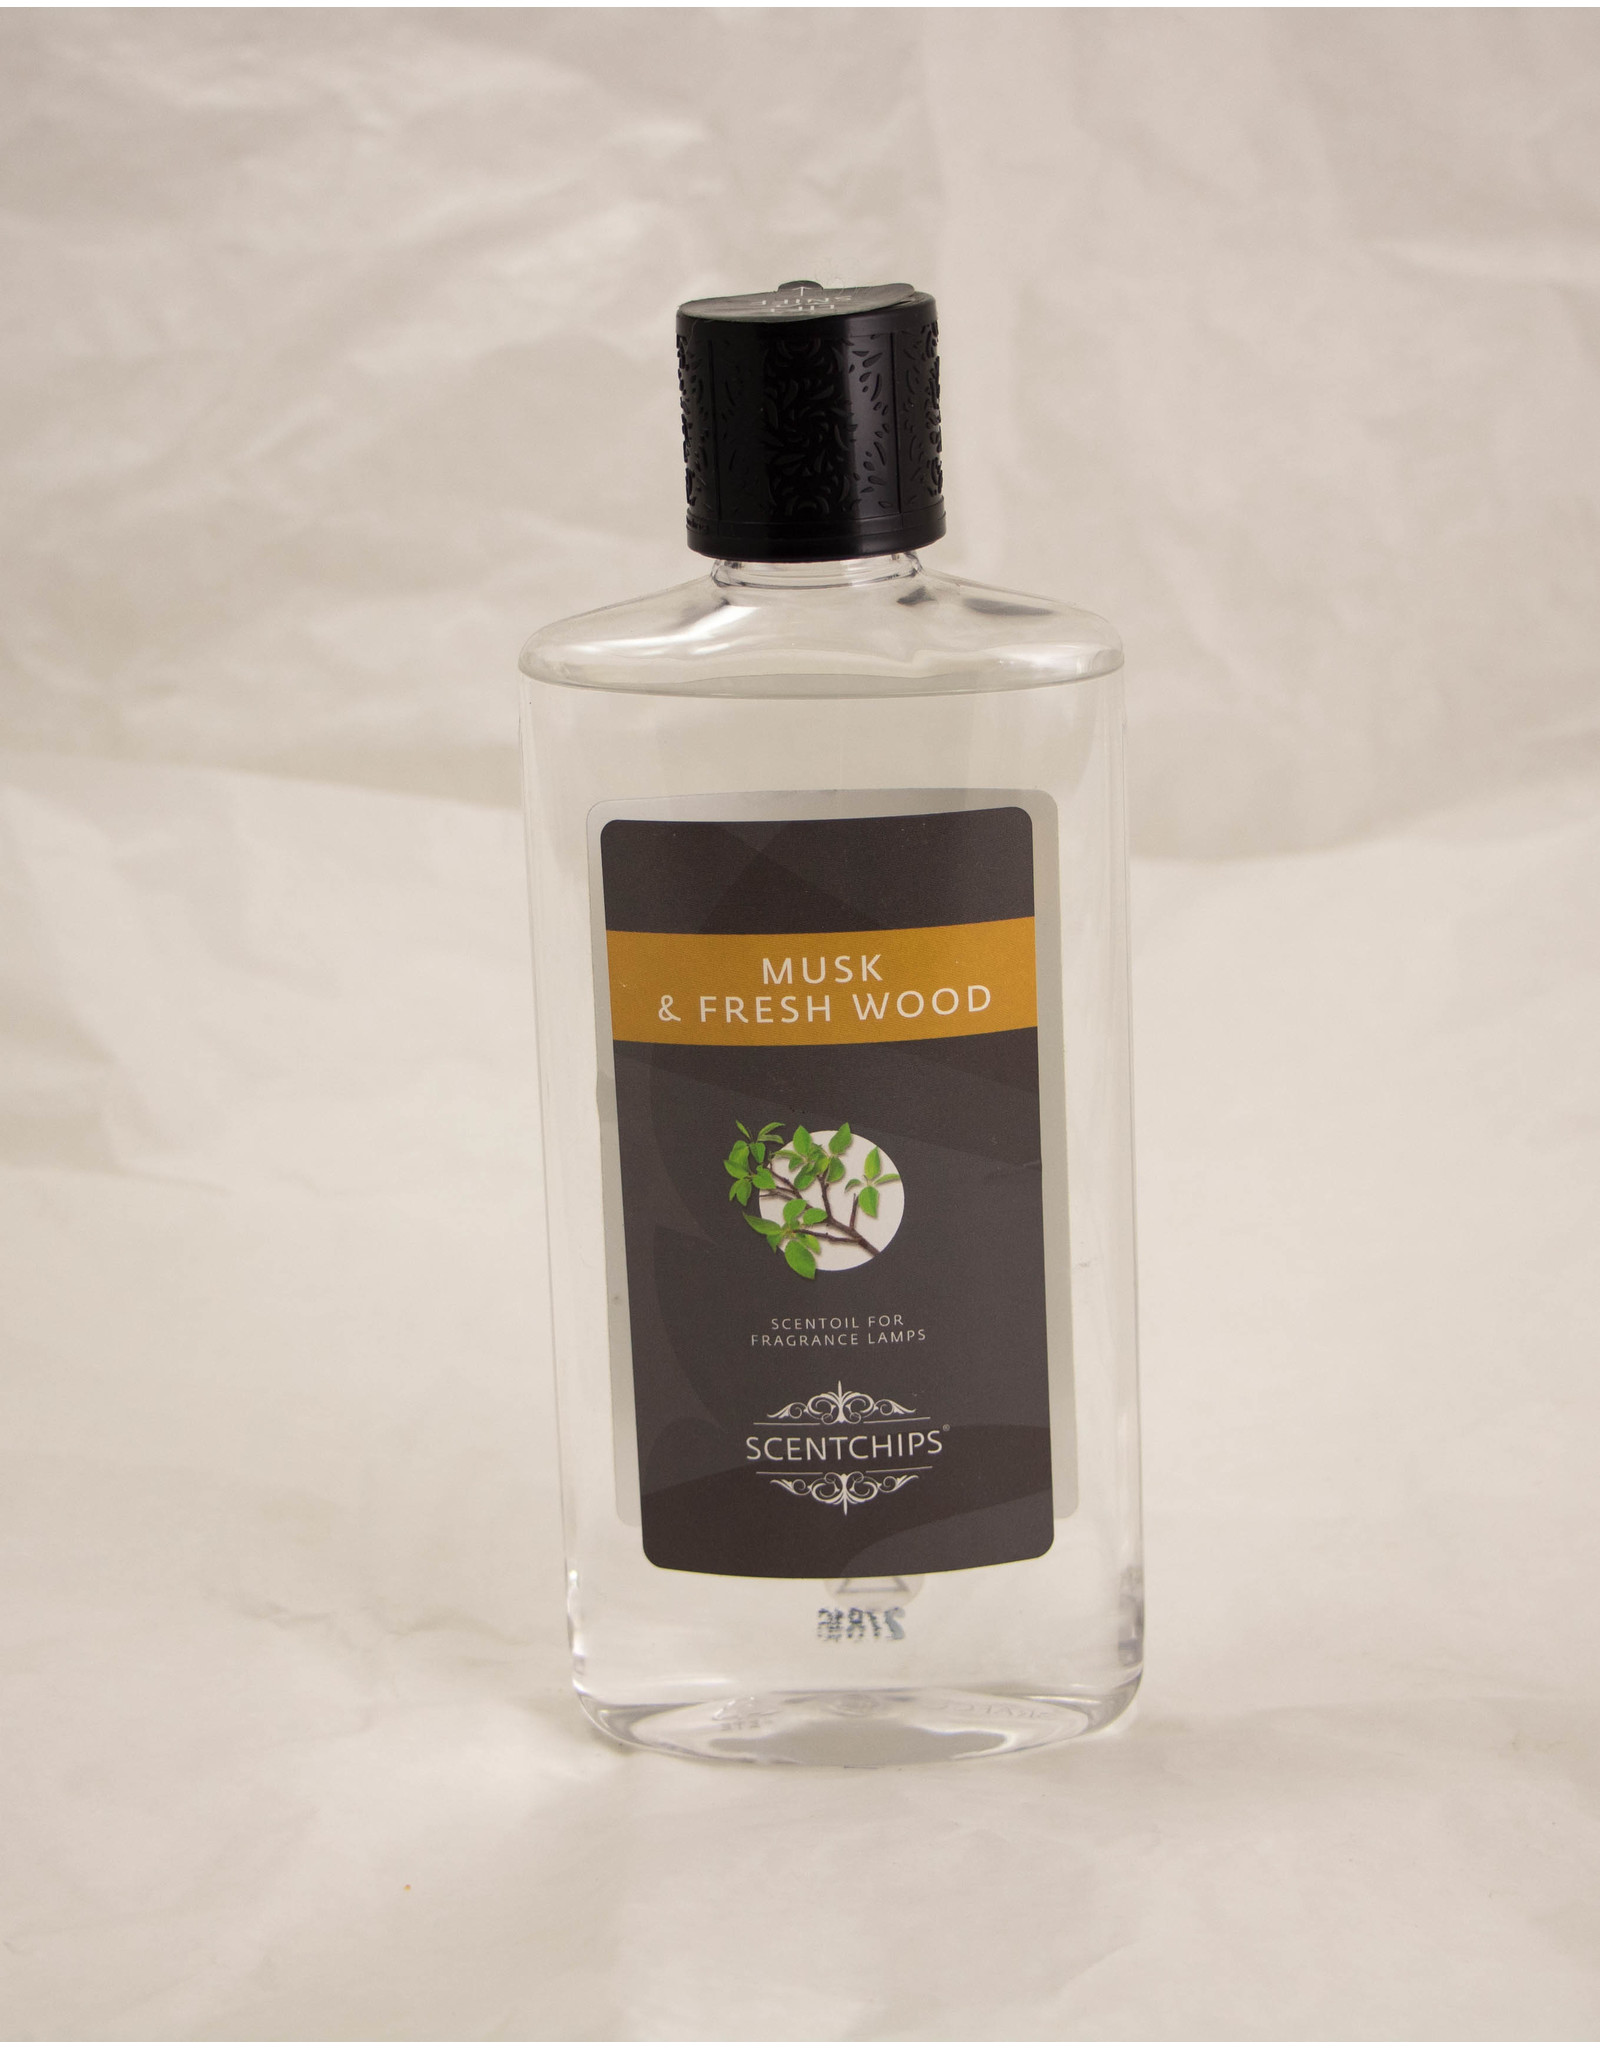 ScentChips Musk & Fresh Wood 475ml